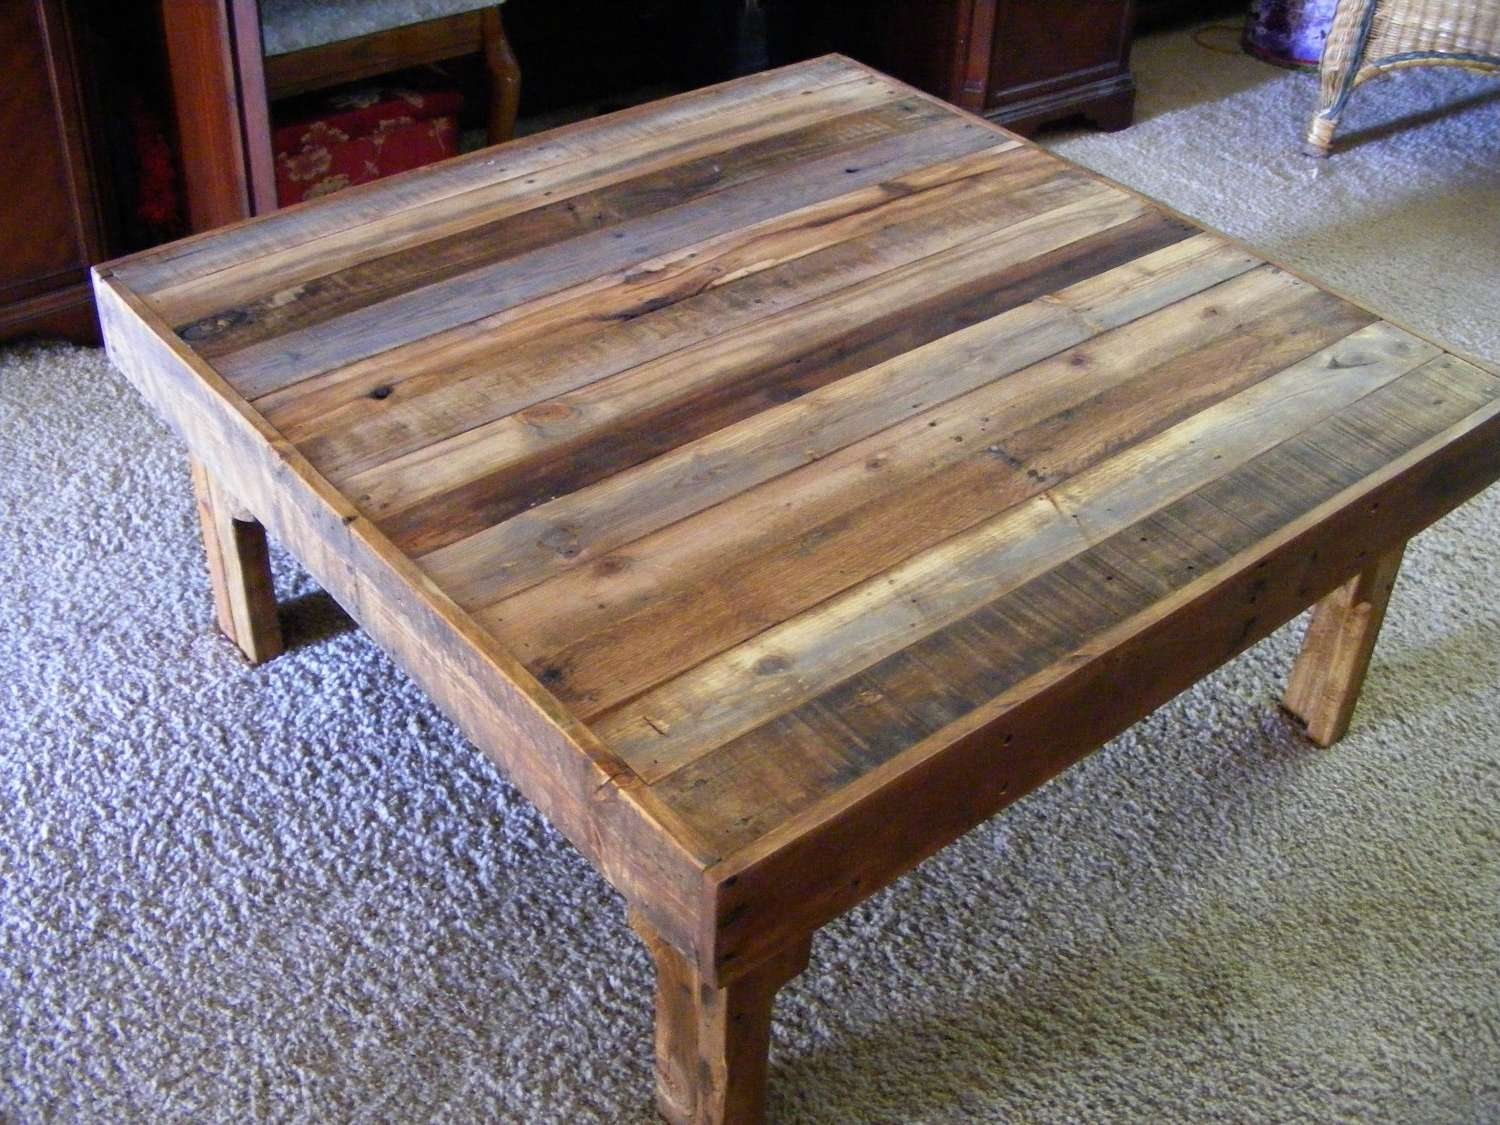 Coffee Table : Amazing Reclaimed Wood End Table Wood Block Coffee Regarding Trendy Hardwood Coffee Tables With Storage (View 7 of 20)